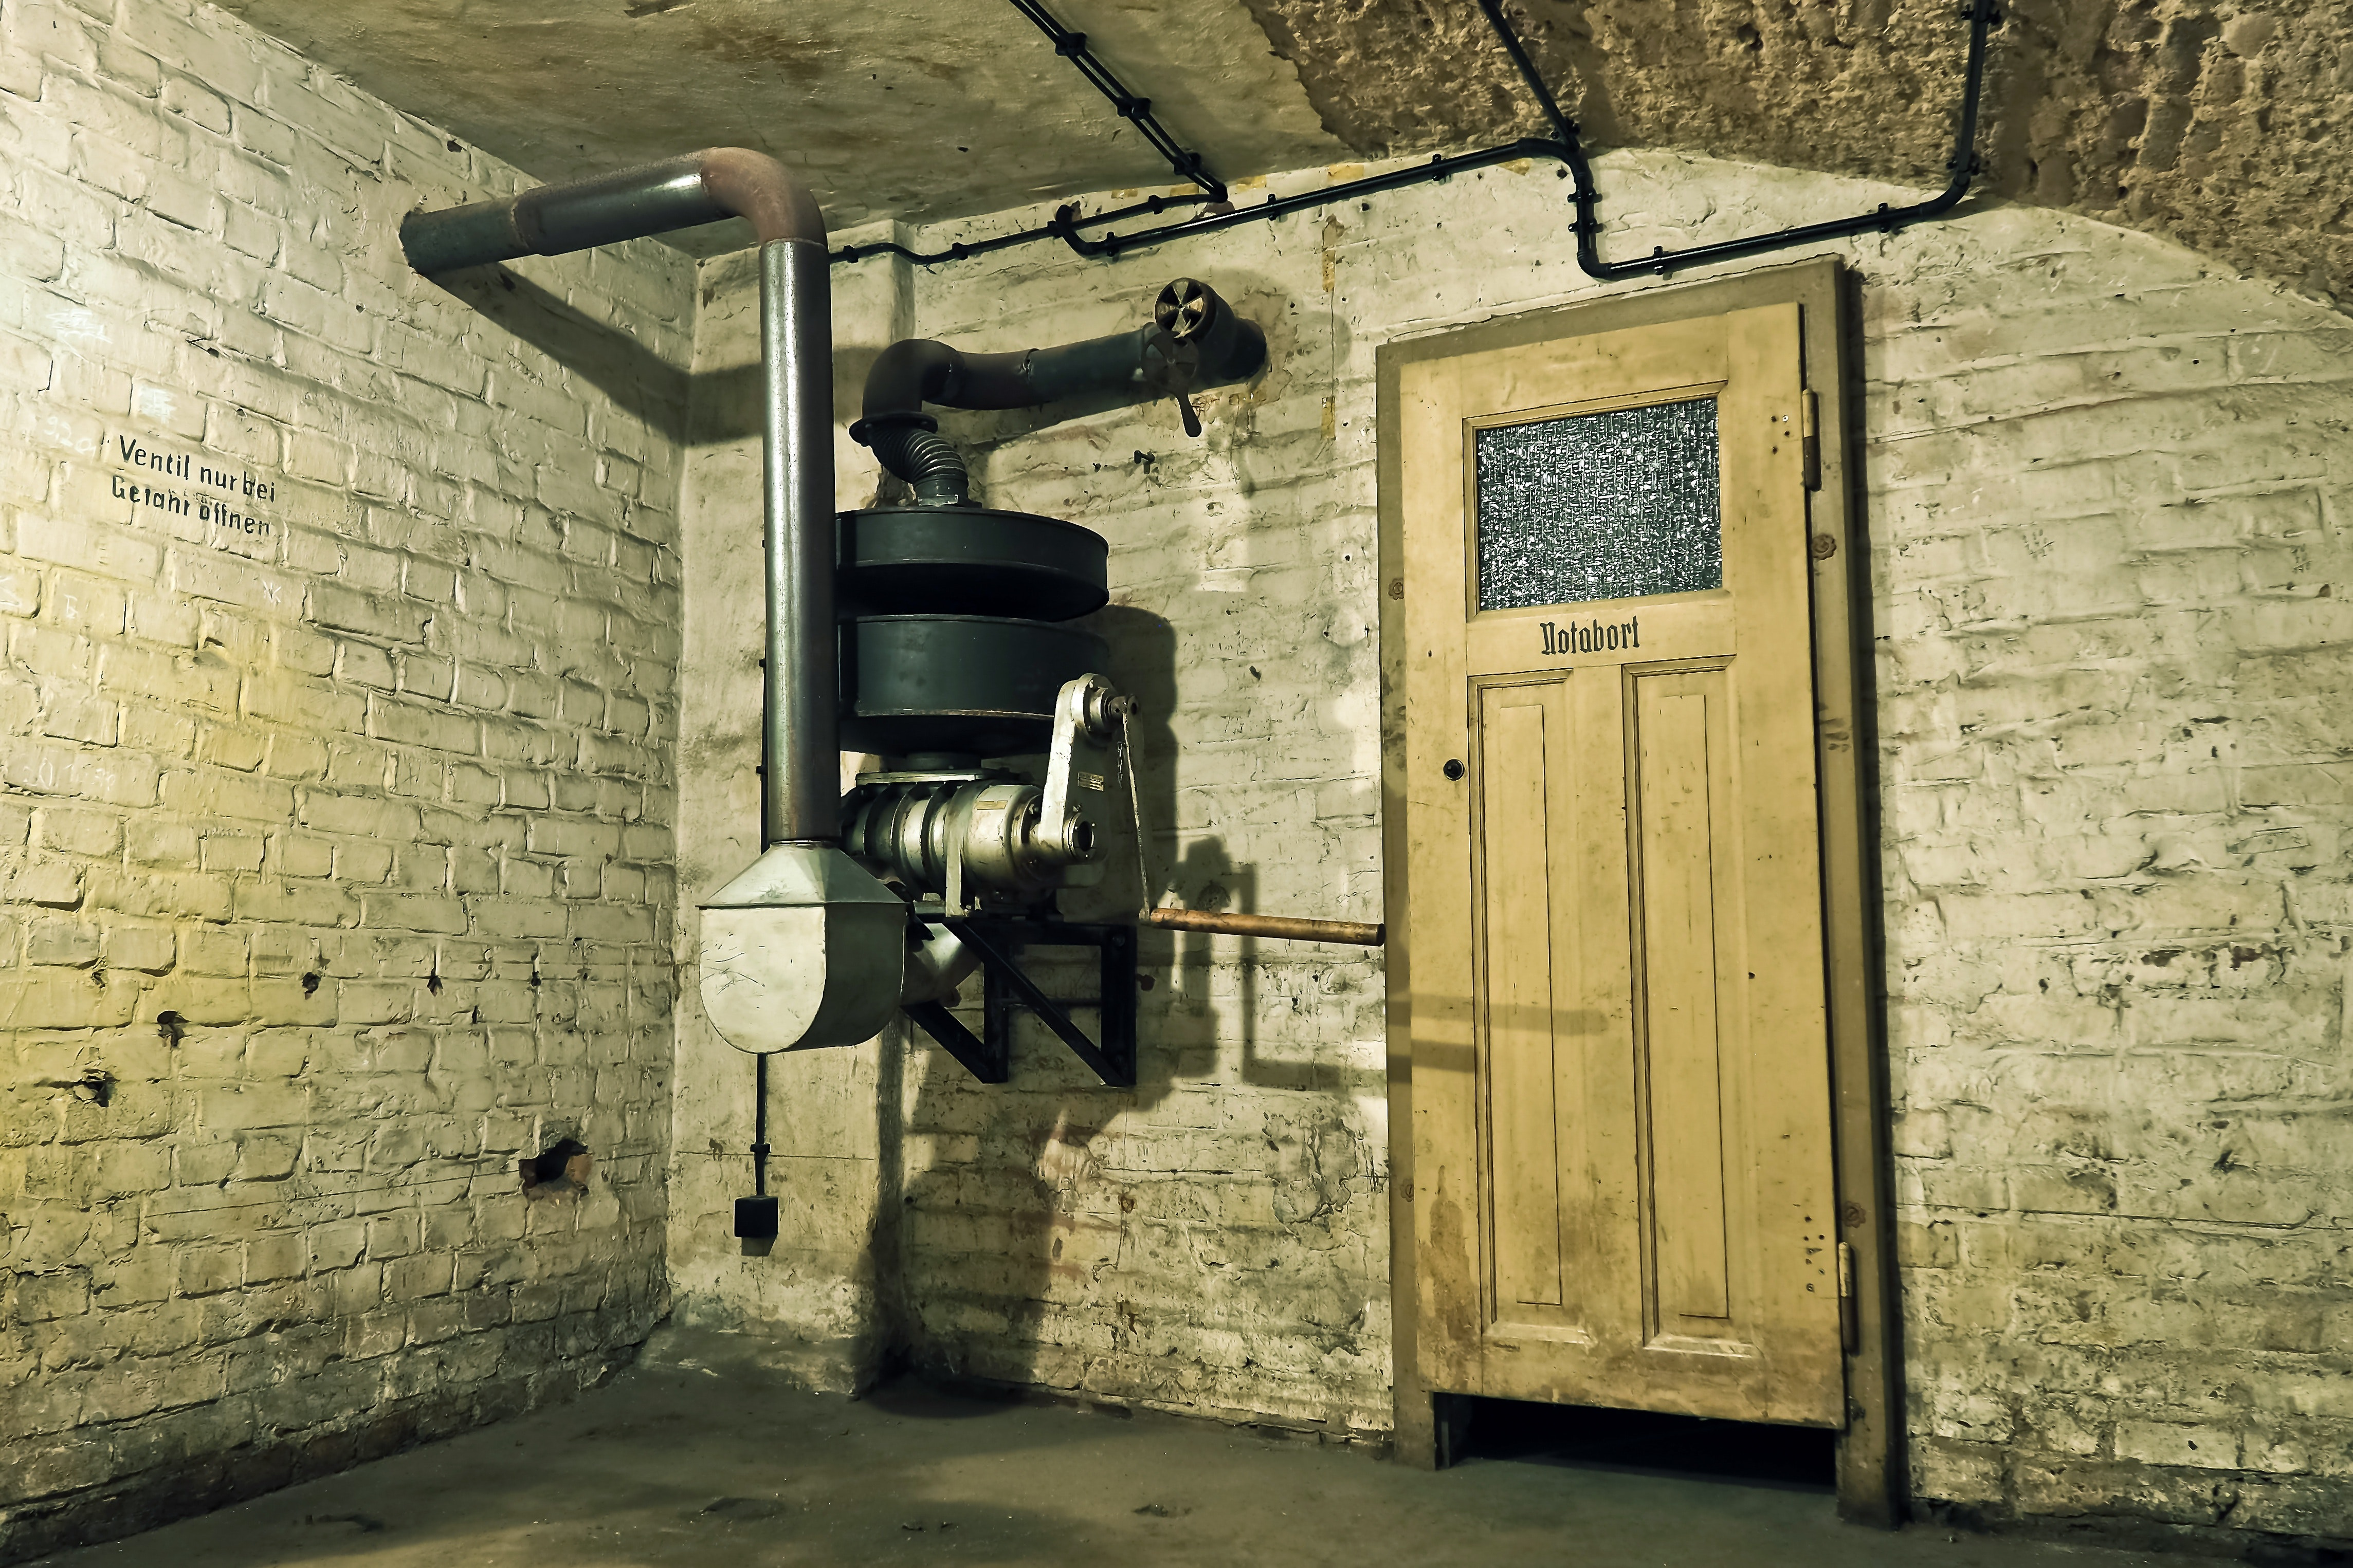 Black and Gray Metal Machine Inside a Room, Indoors, Wall, Vintage, Underground, HQ Photo